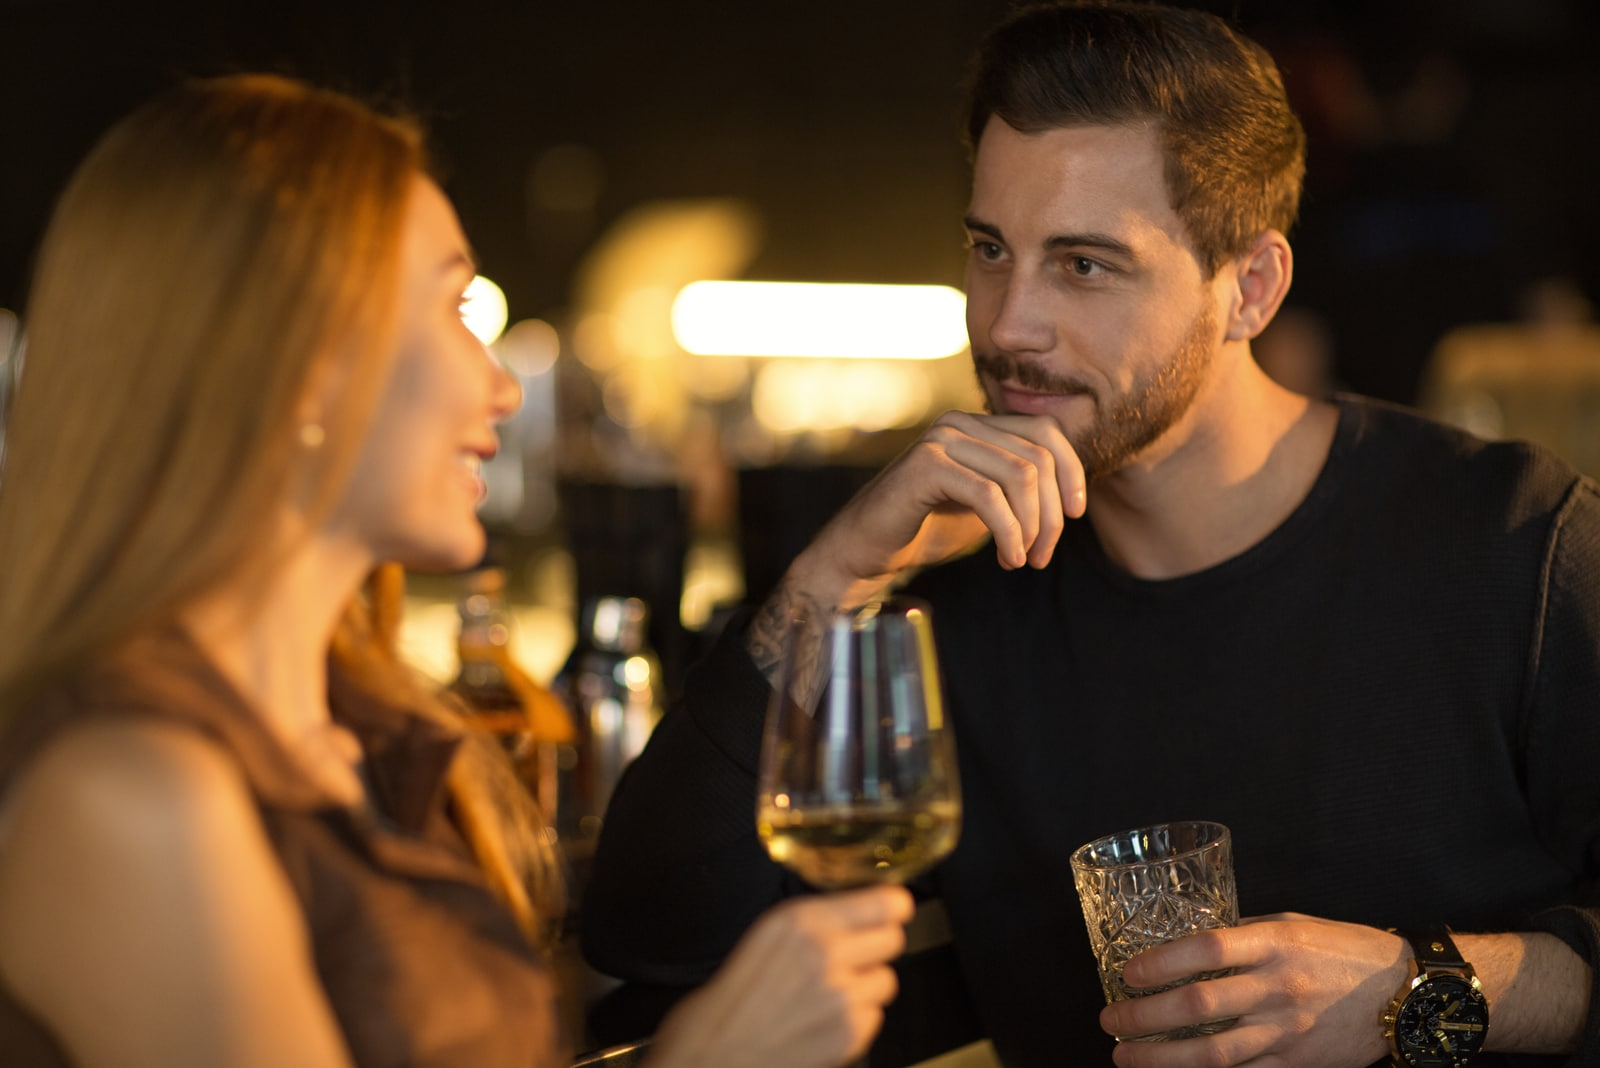 a man and a woman drinking drinks and talking